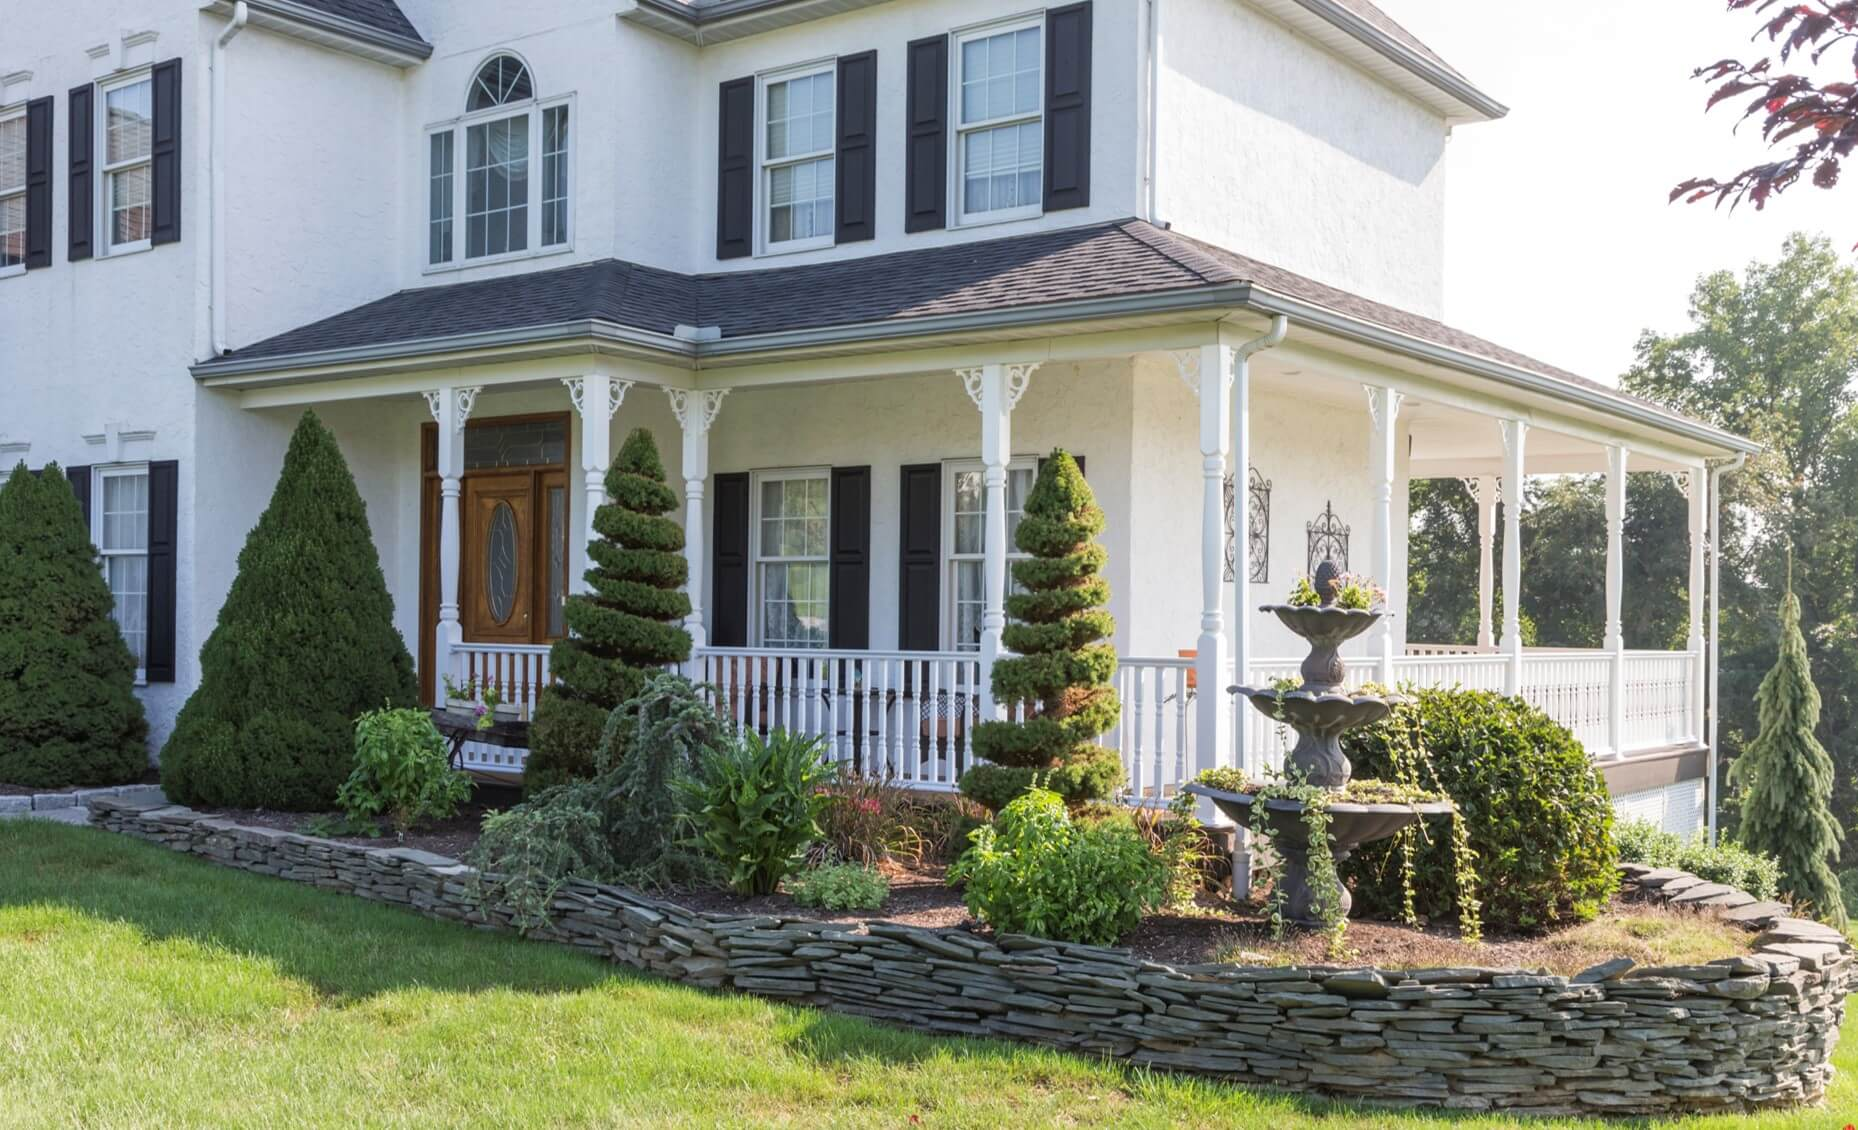 Choosing the Right Porch Posts for Your Home